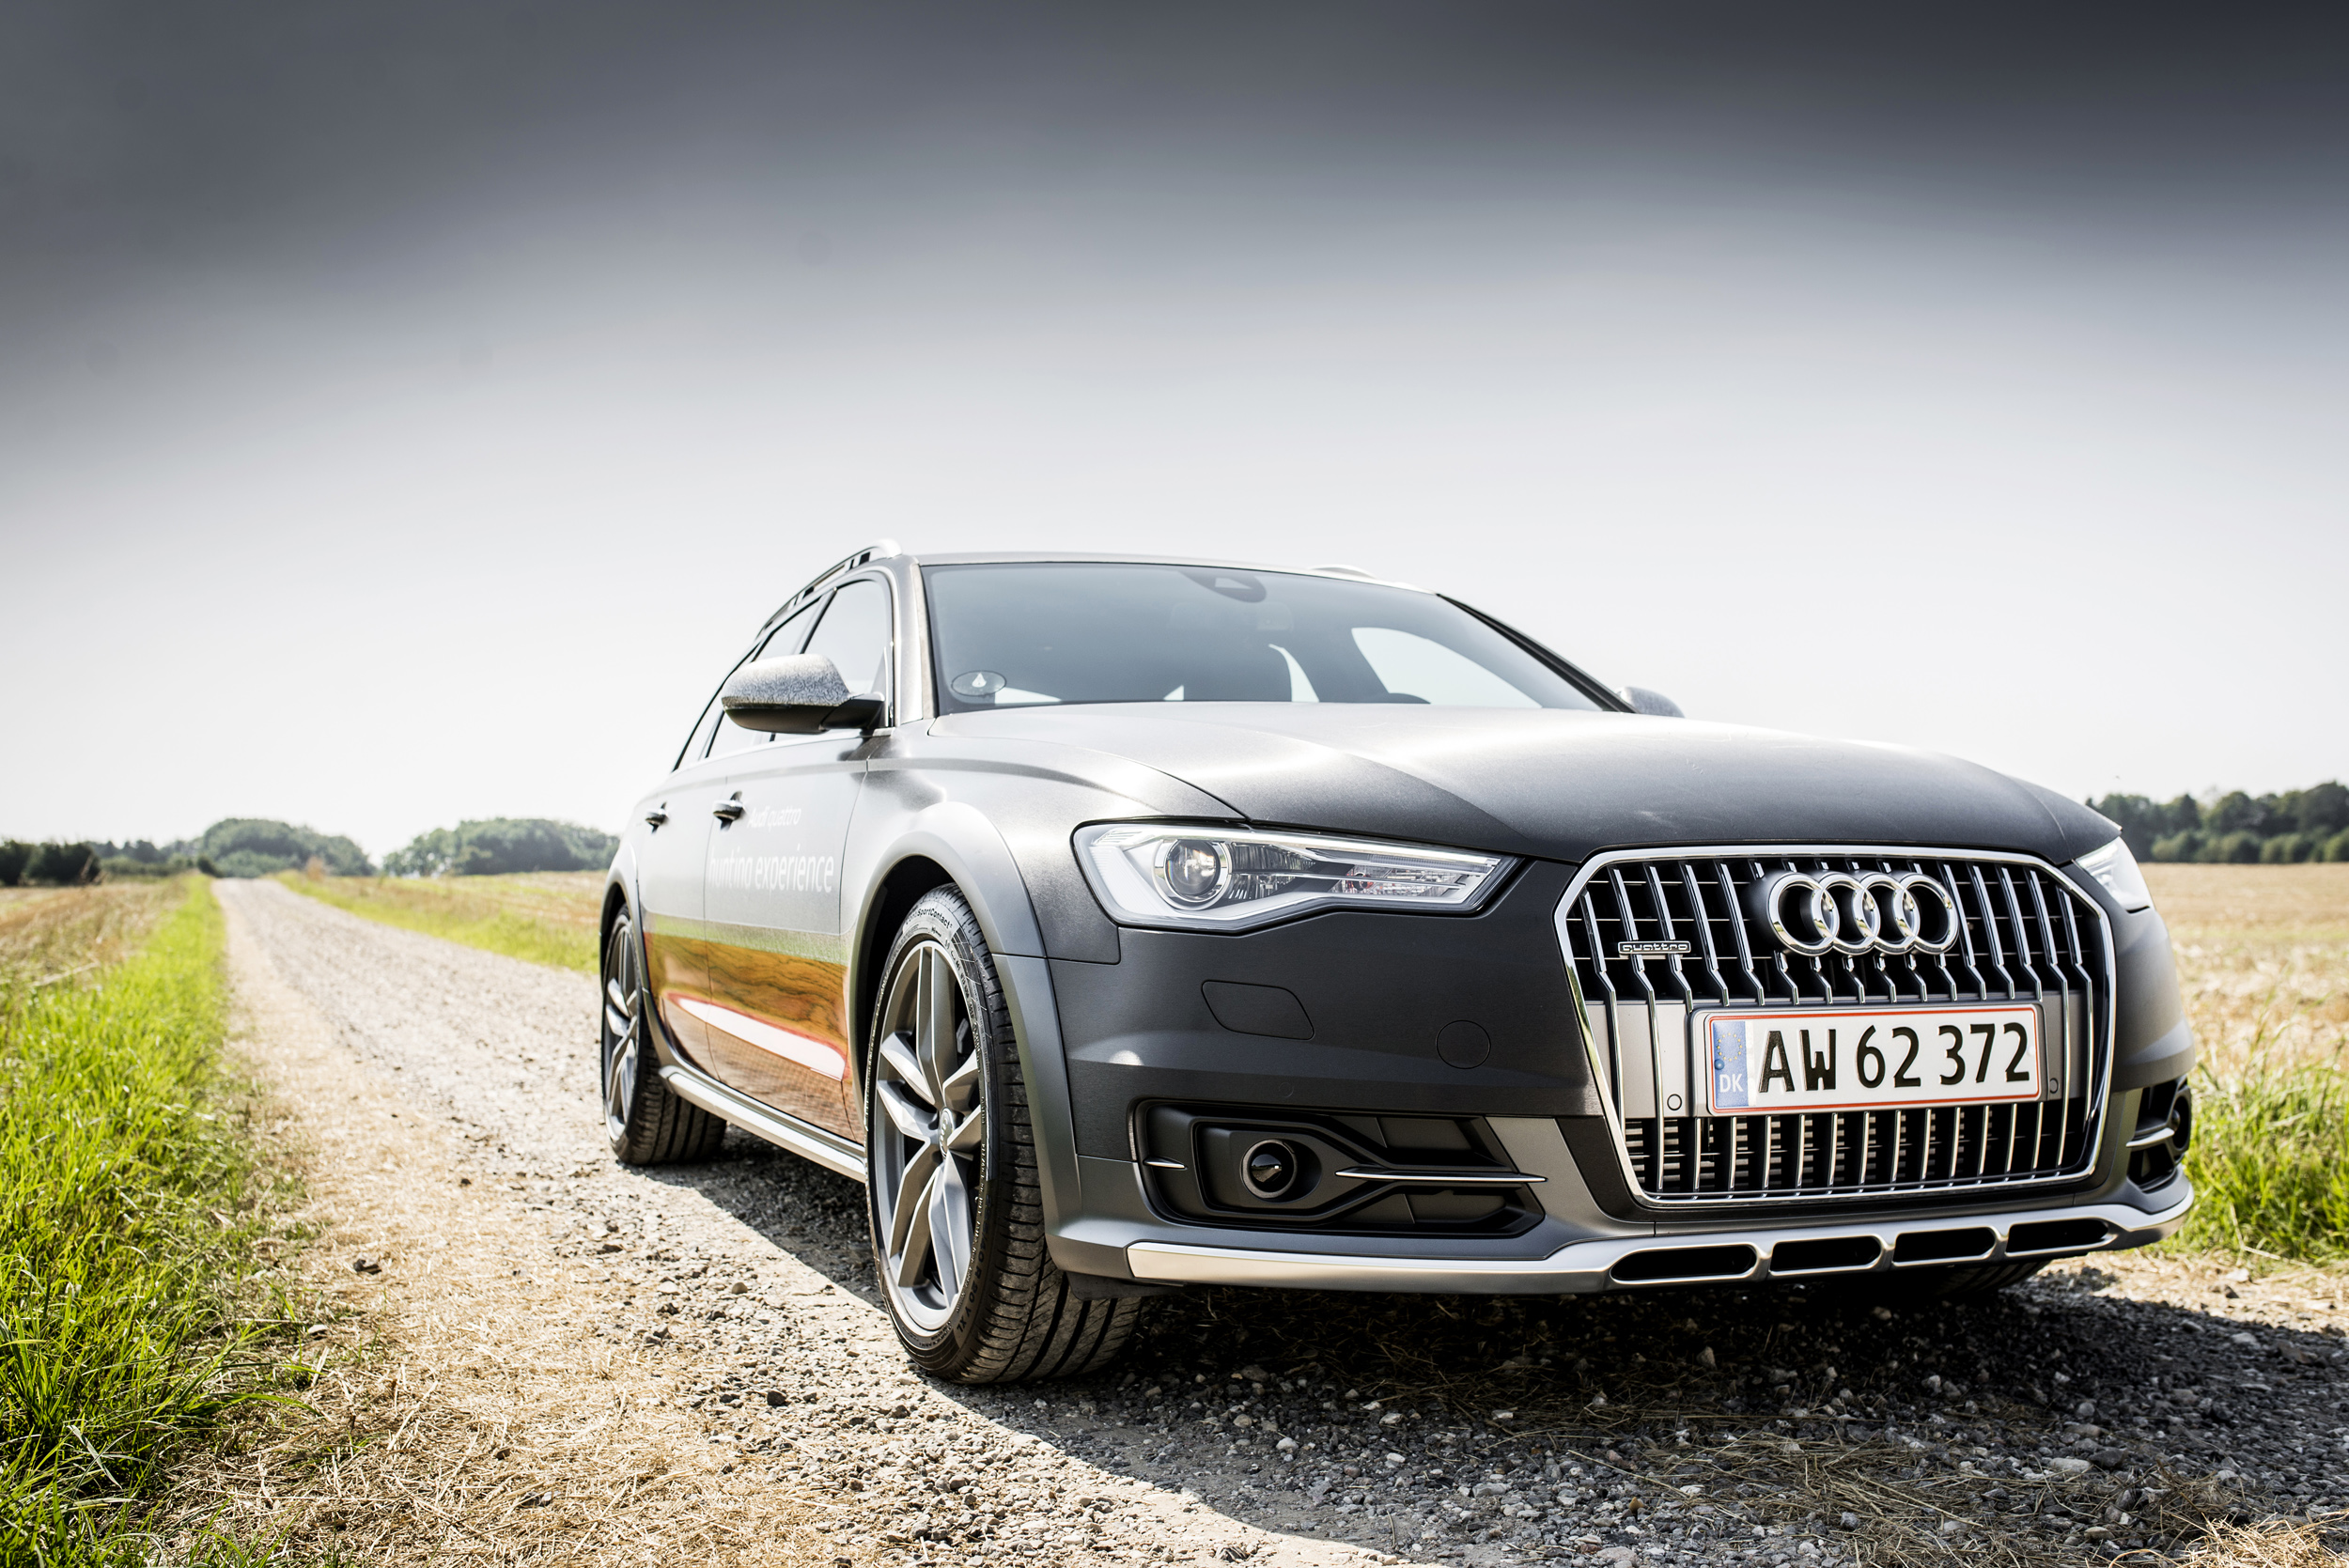 Audi A6 Allroad - hunting experience